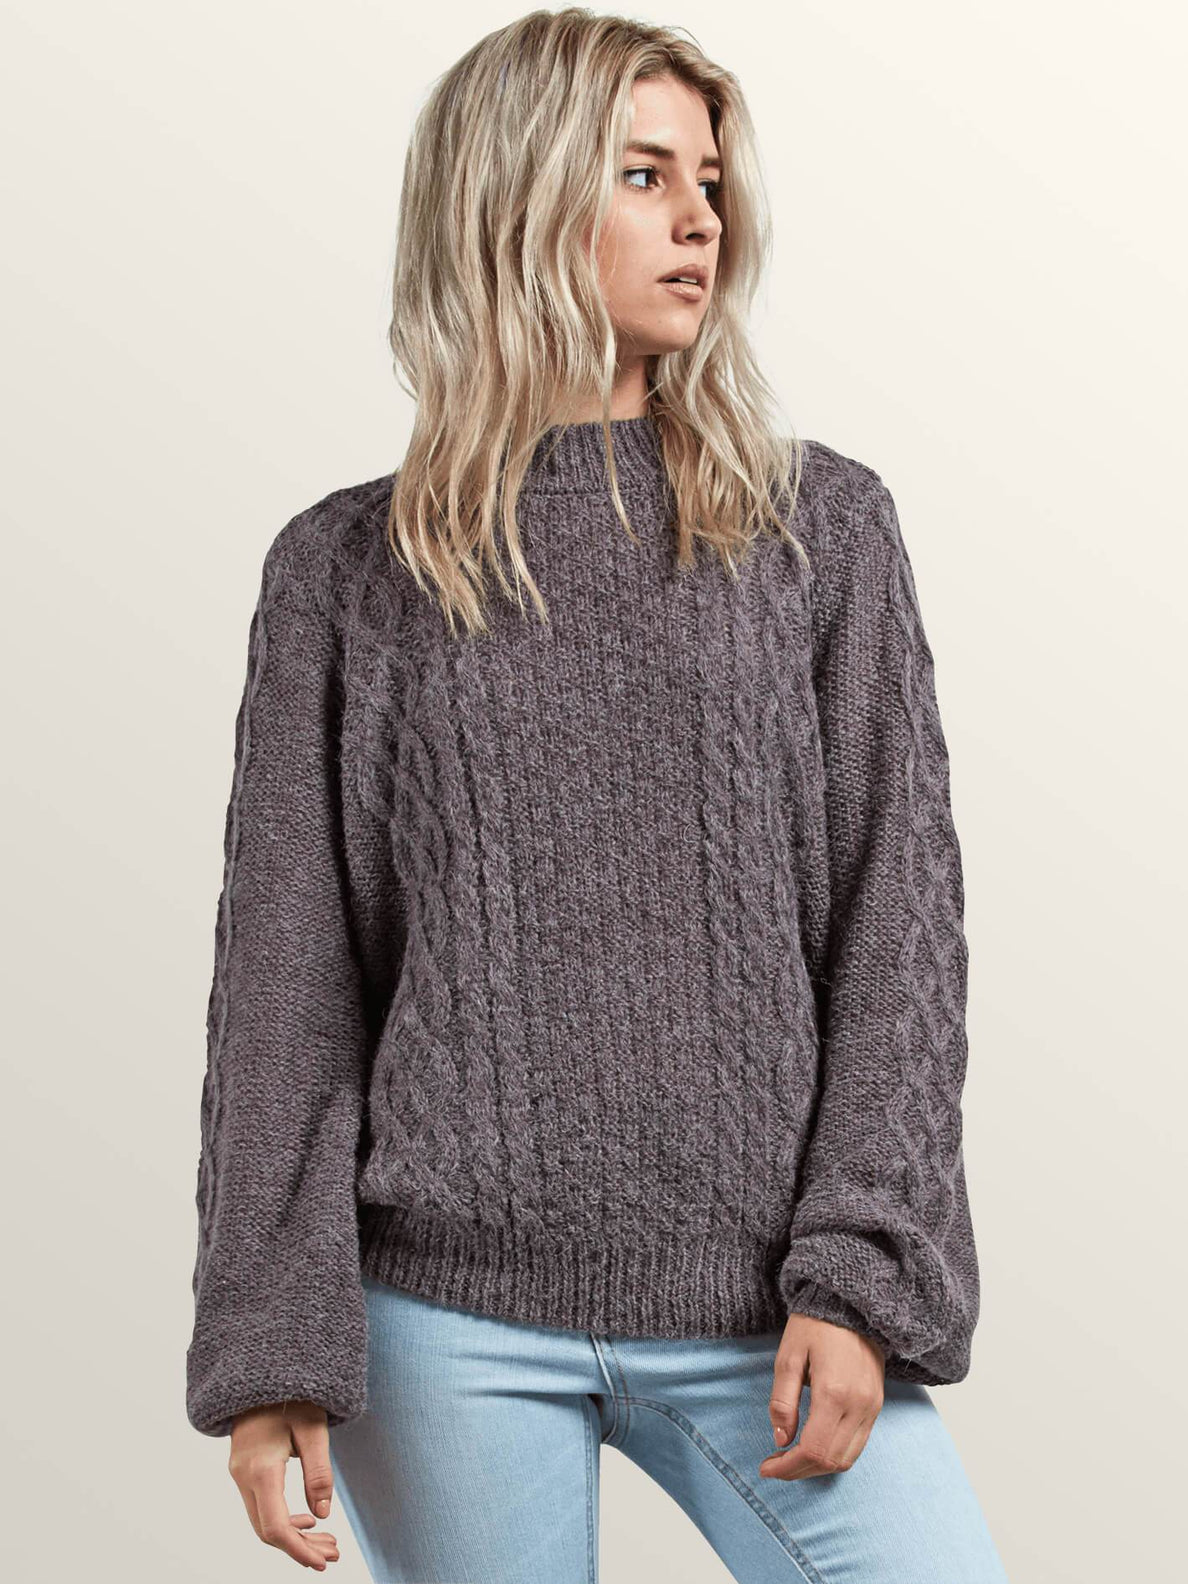 Hellooo Sweater In Heather Grey, Front View